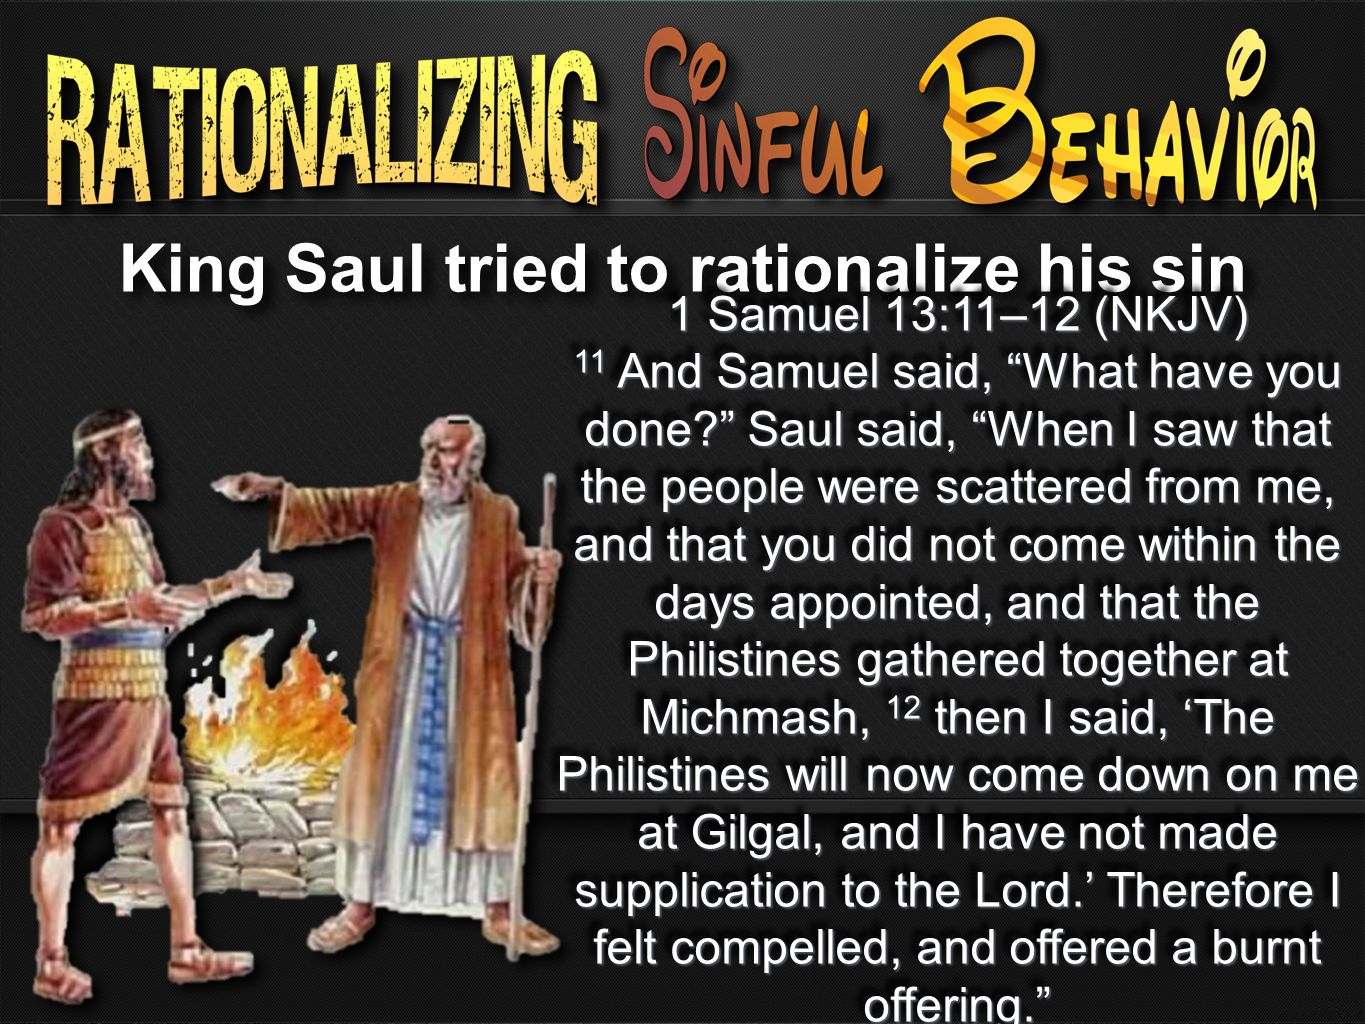 King Saul tried to rationalize his sin 1 Samuel 13:11–12 (NKJV) 11 And Samuel said, What have you done? Saul said, When I saw that the people were scattered from me, and that you did not come within the days appointed, and that the Philistines gathered together at Michmash, 12 then I said, 'The Philistines will now come down on me at Gilgal, and I have not made supplication to the Lord.' Therefore I felt compelled, and offered a burnt offering. 1 Samuel 13:11–12 (NKJV) 11 And Samuel said, What have you done? Saul said, When I saw that the people were scattered from me, and that you did not come within the days appointed, and that the Philistines gathered together at Michmash, 12 then I said, 'The Philistines will now come down on me at Gilgal, and I have not made supplication to the Lord.' Therefore I felt compelled, and offered a burnt offering.